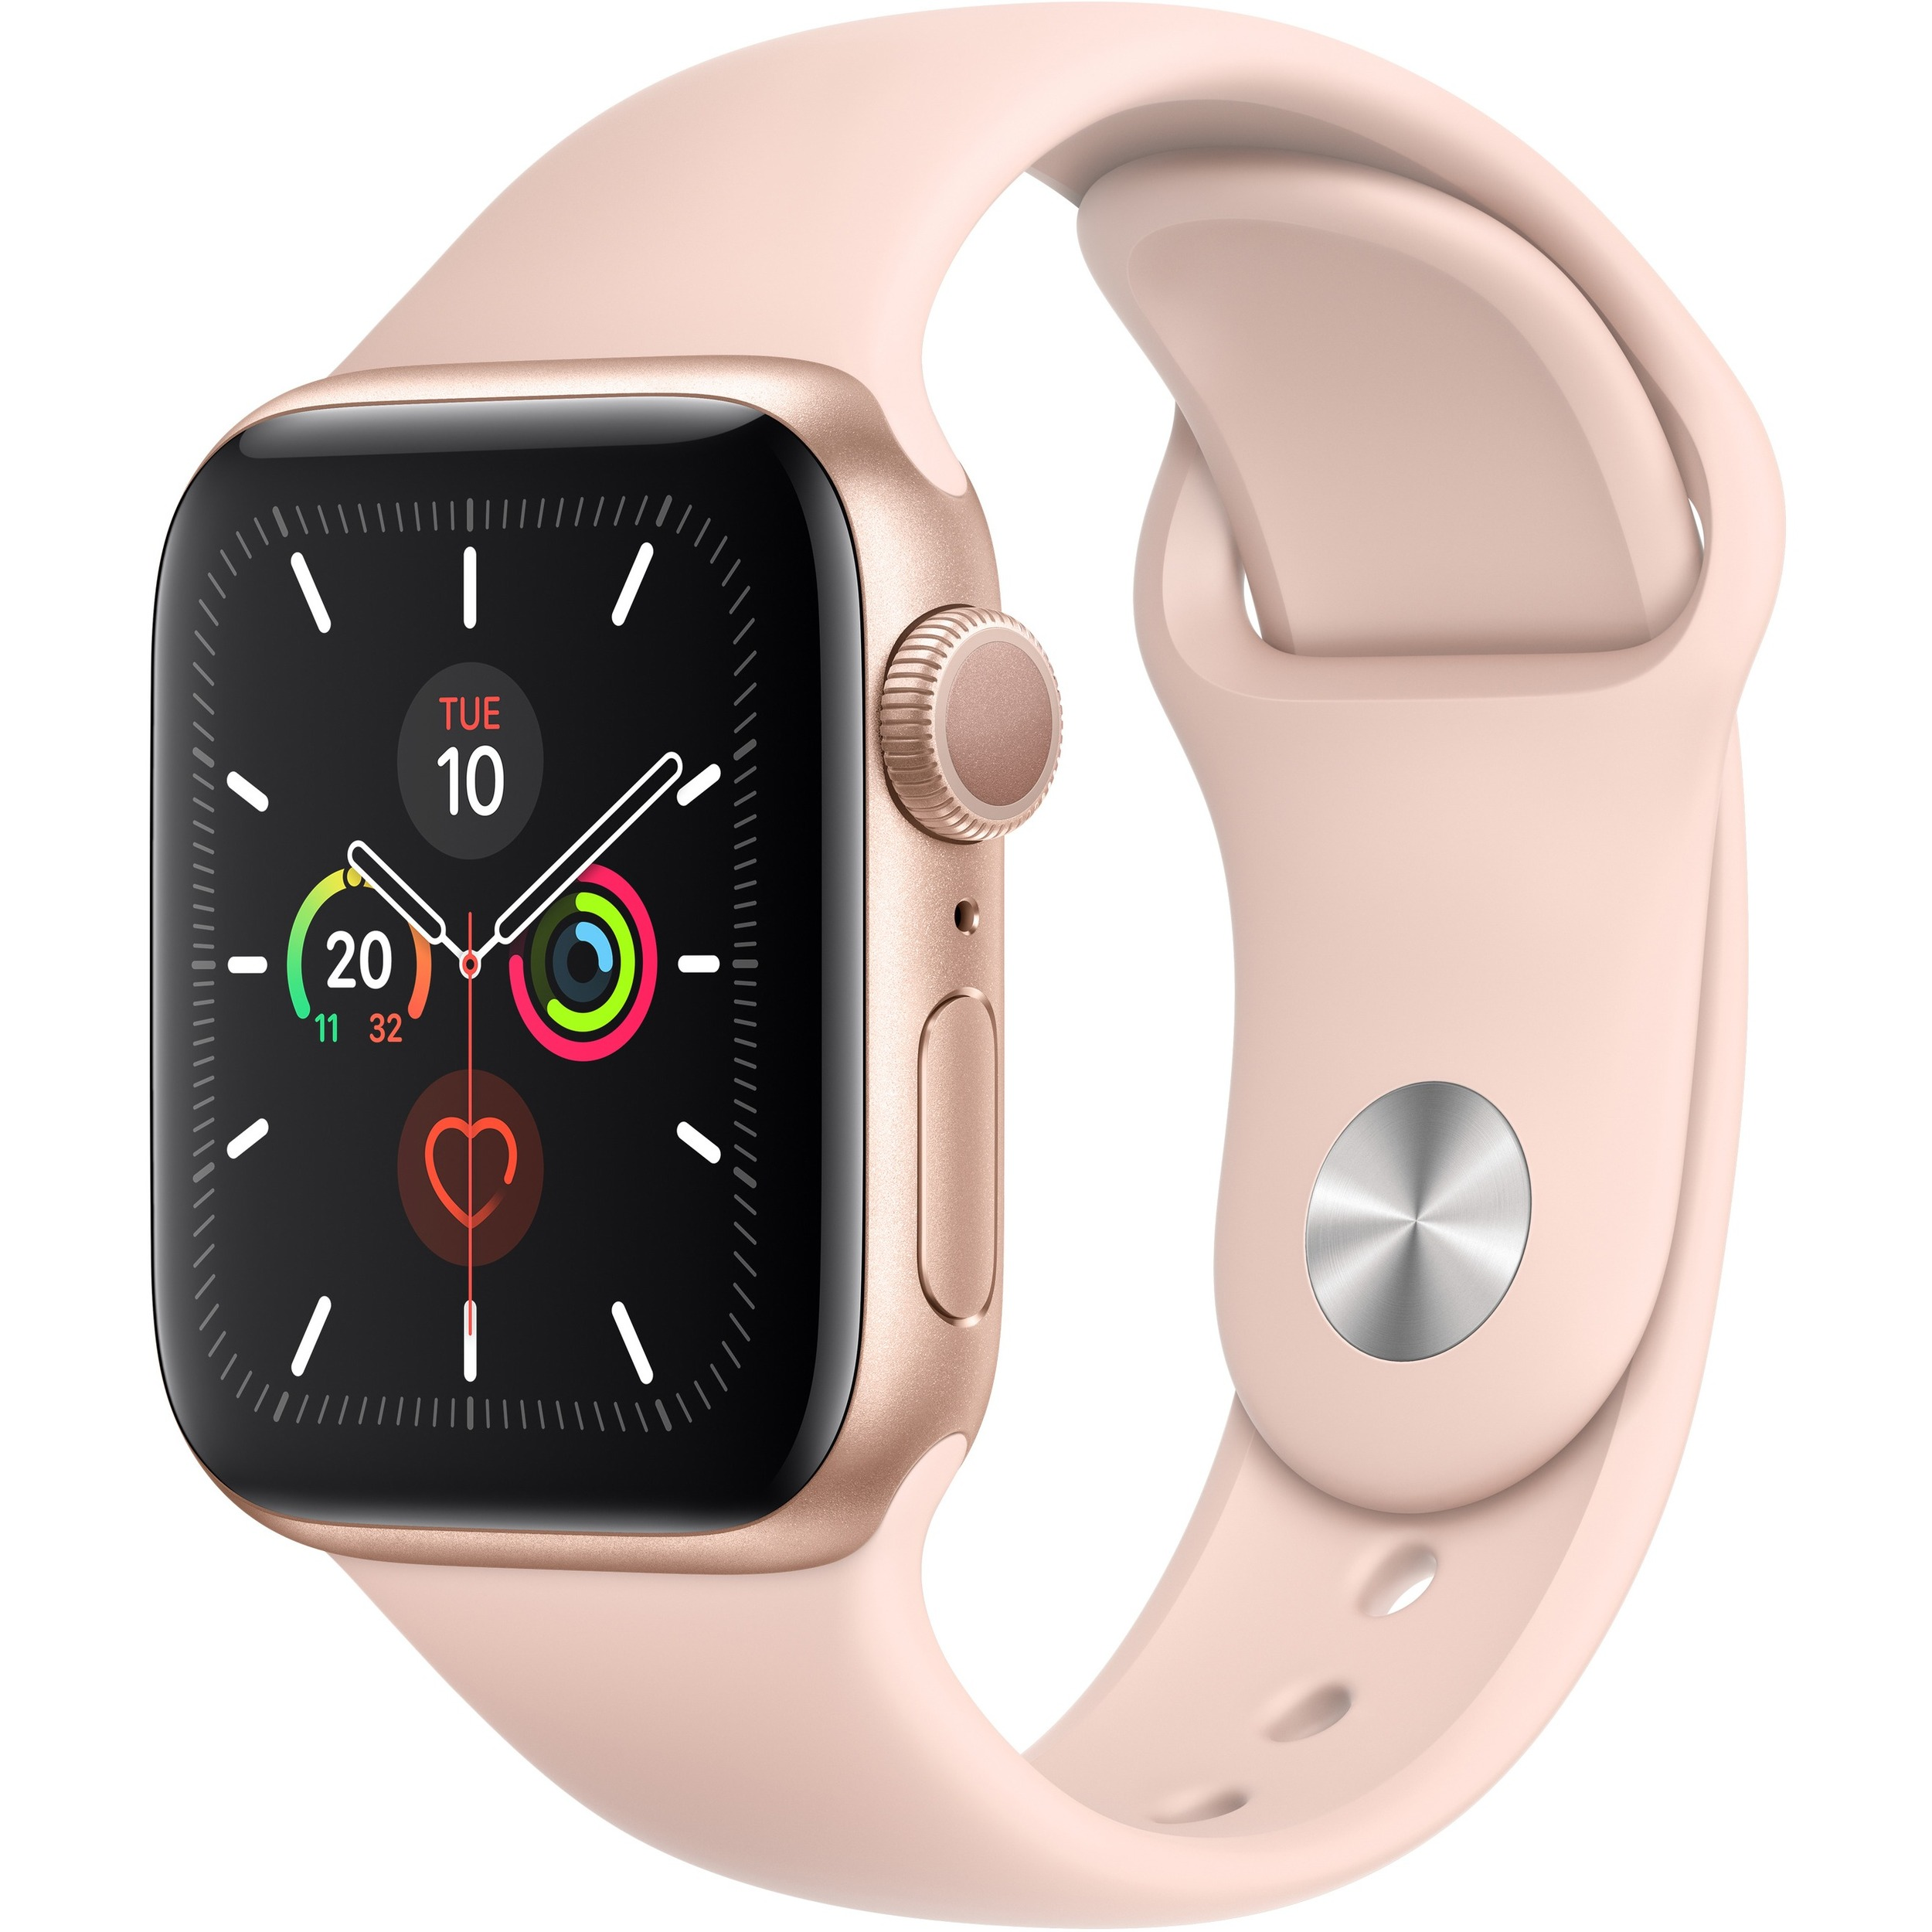 Apple Watch Series 5 Smart Watch - Wrist Wearable - Gold Aluminum Case - Pink Sand Band - Aluminium Case